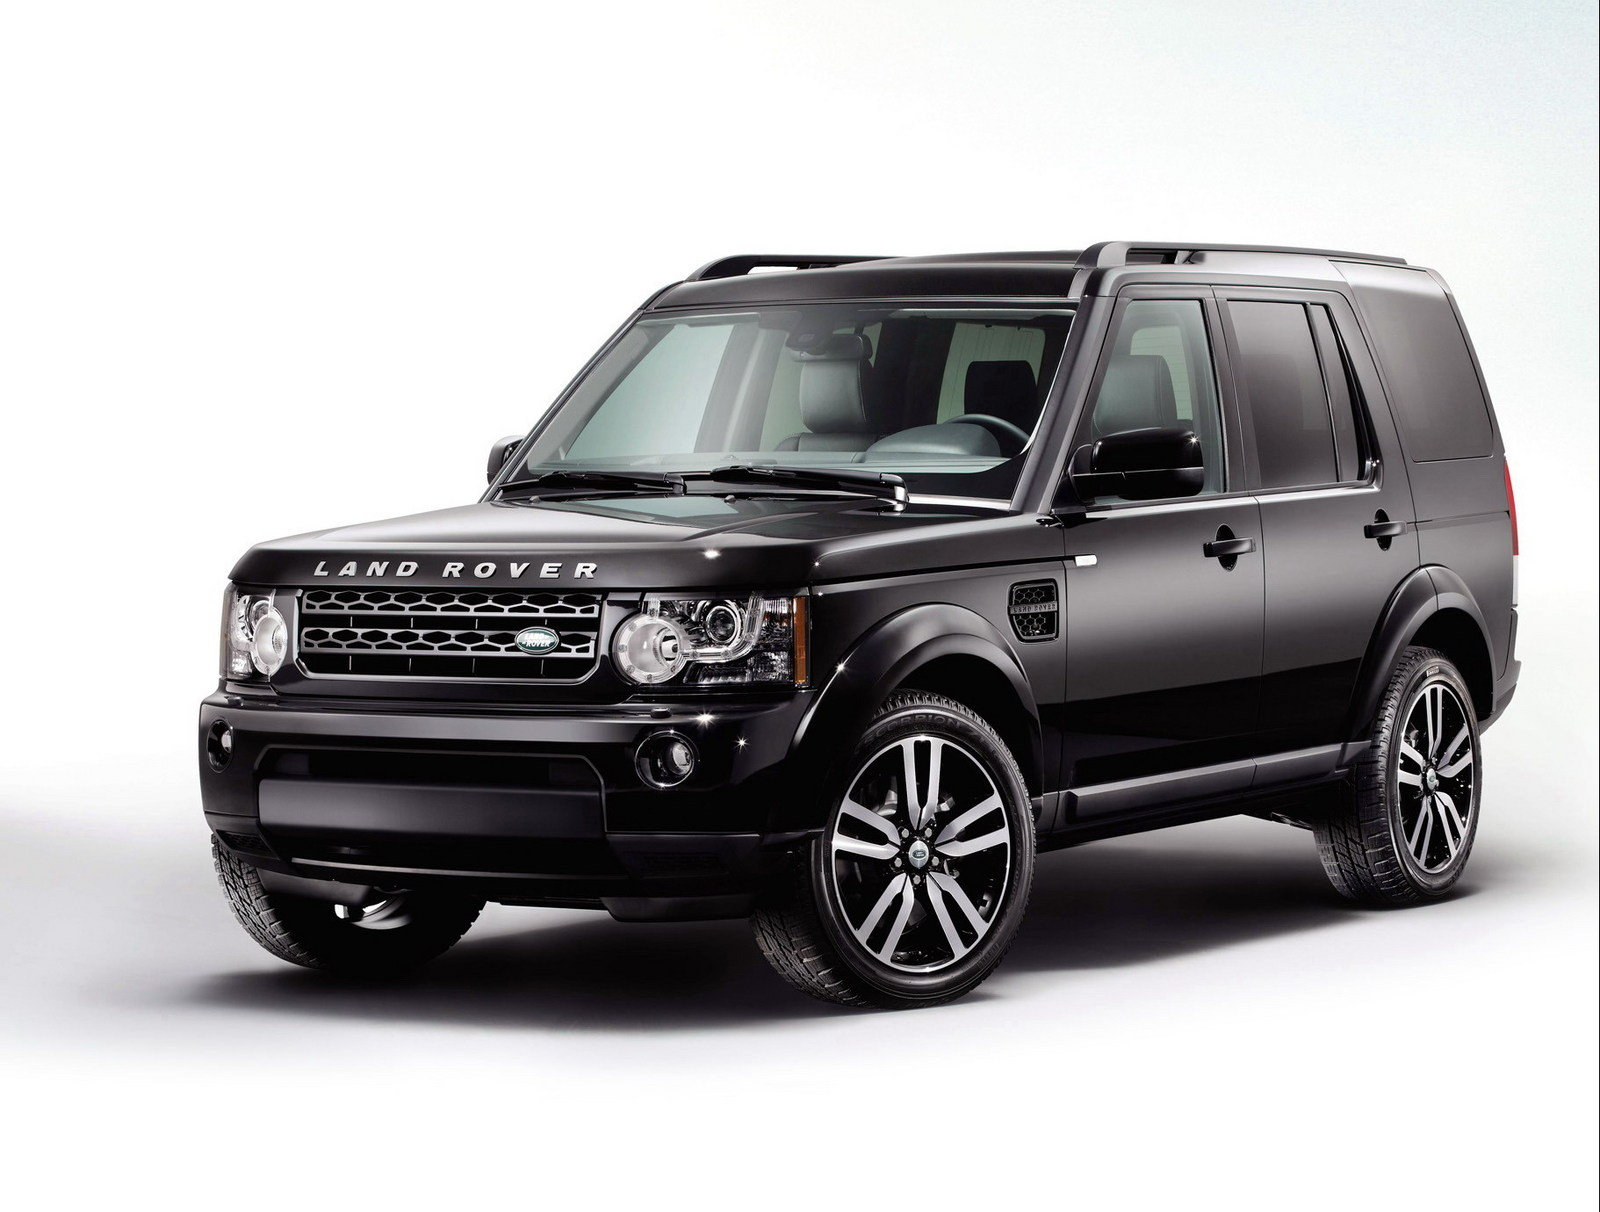 2011 land rover discovery 4 landmark limited editions review top speed. Black Bedroom Furniture Sets. Home Design Ideas